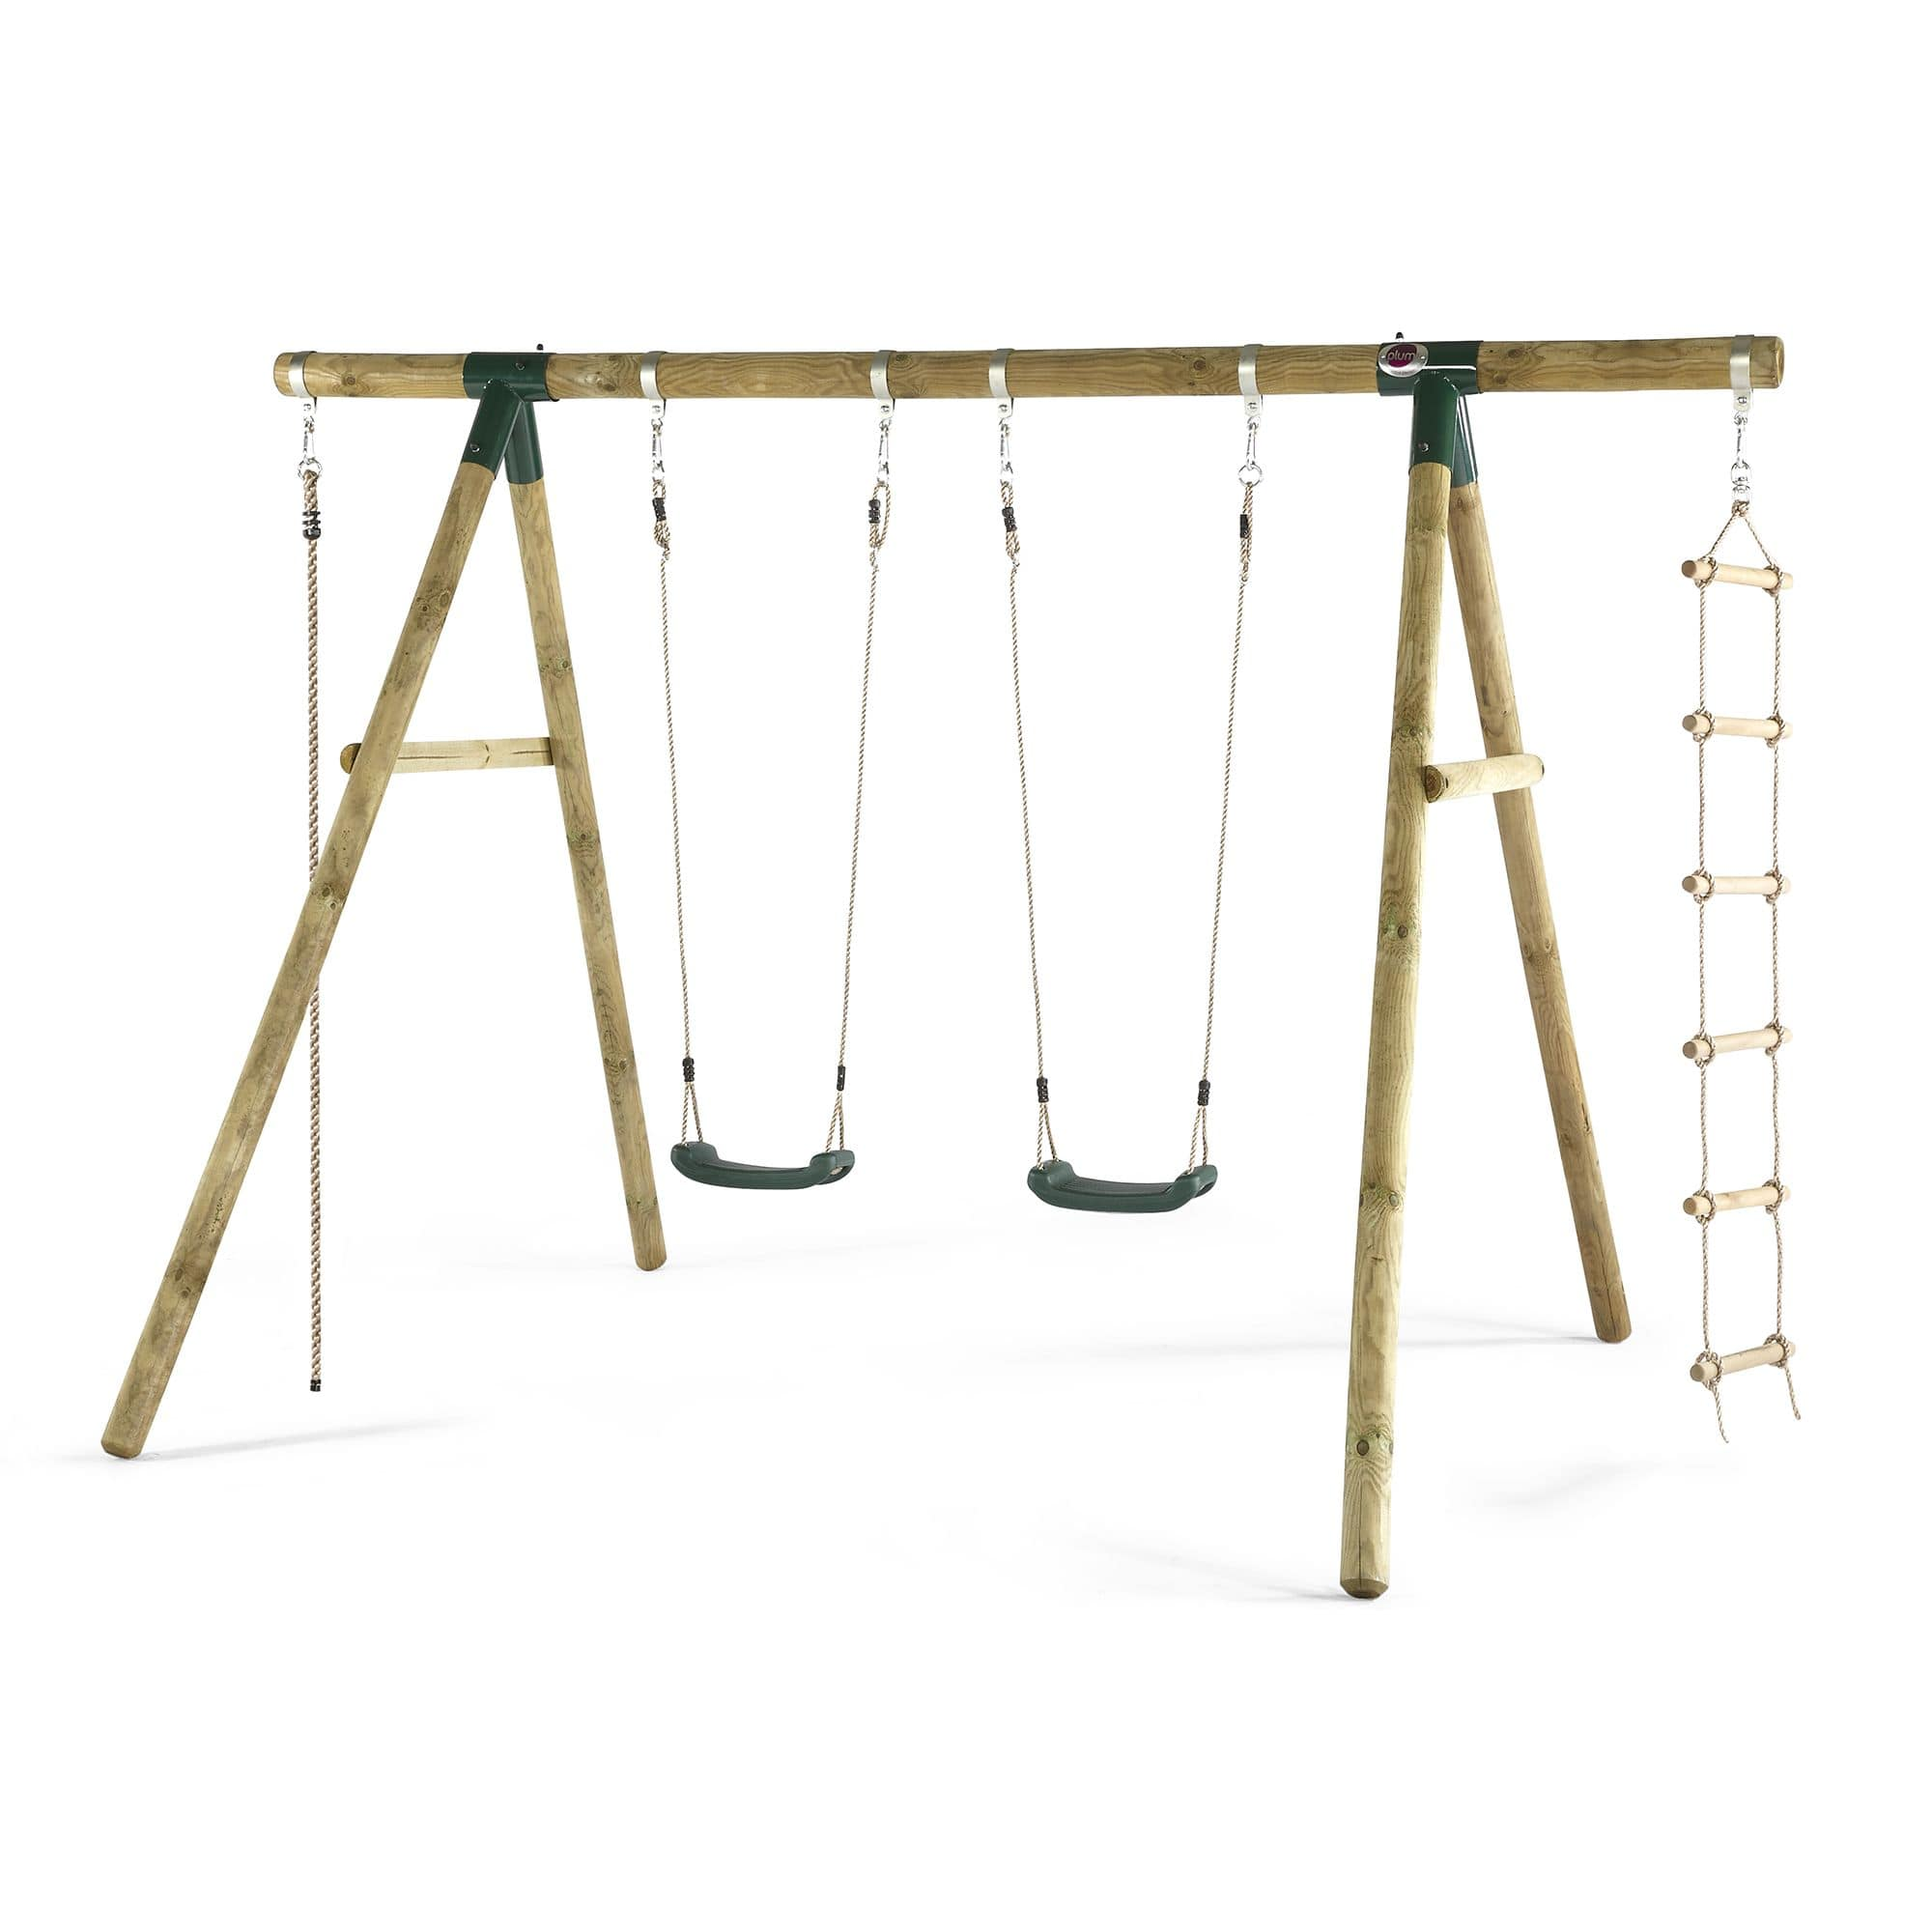 Plum® Gibbon Wooden Garden Swing Set